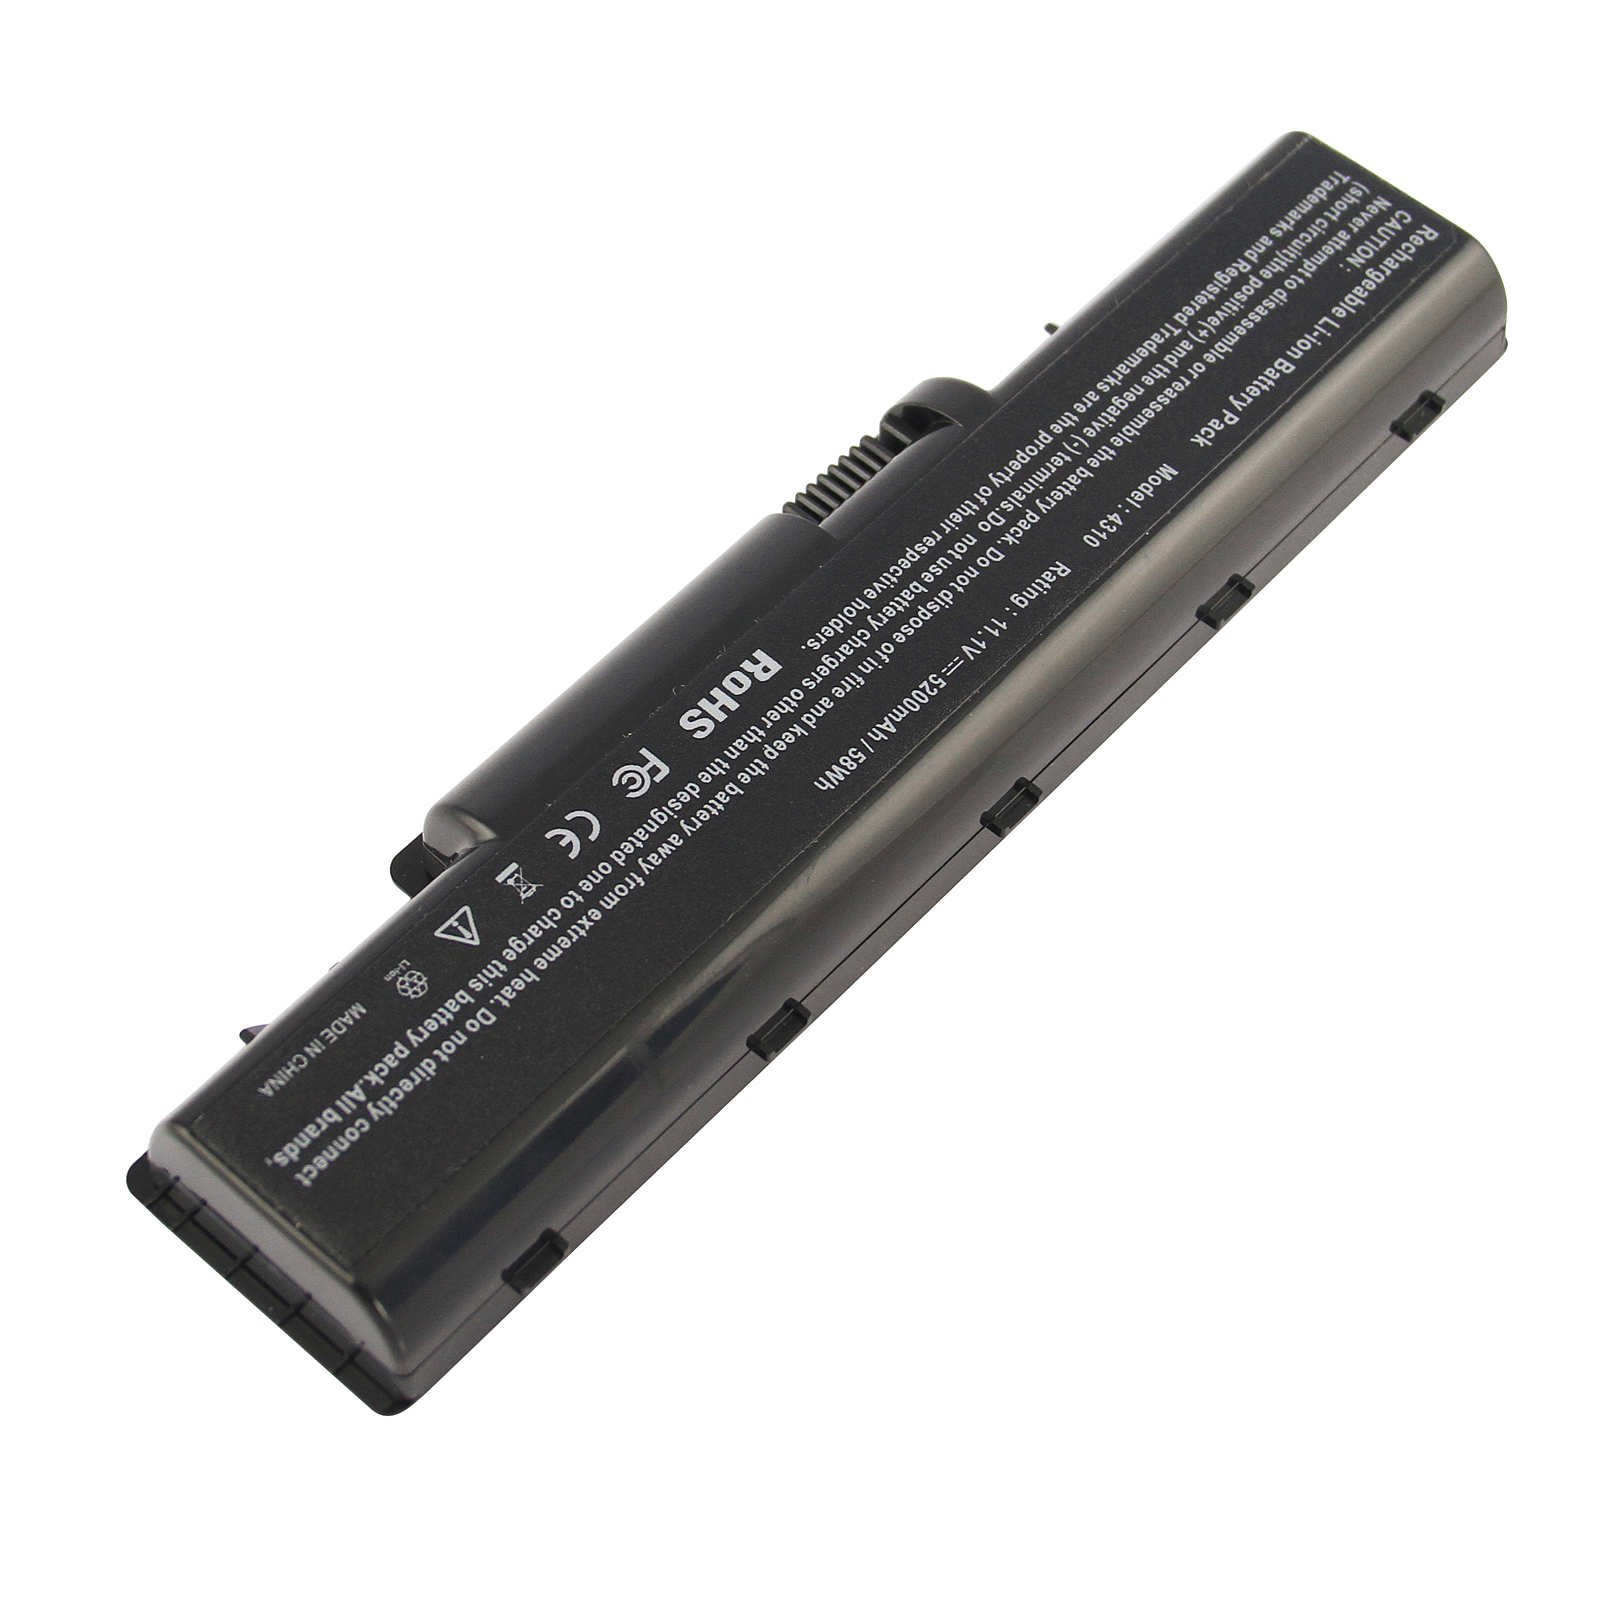 Fancy Buying 6 Cells Laptop Battery for ACER Aspire 2930 2930G 2930Z 4230 4310 Series 4315 4330 4520 4520G 4530 4710 4710G 4715Z-3A0512C 4720 4720G 4720Z 4730 4730Z 4730ZG 4920 -12 Months Warranty by Fancy Buying (Image #2)